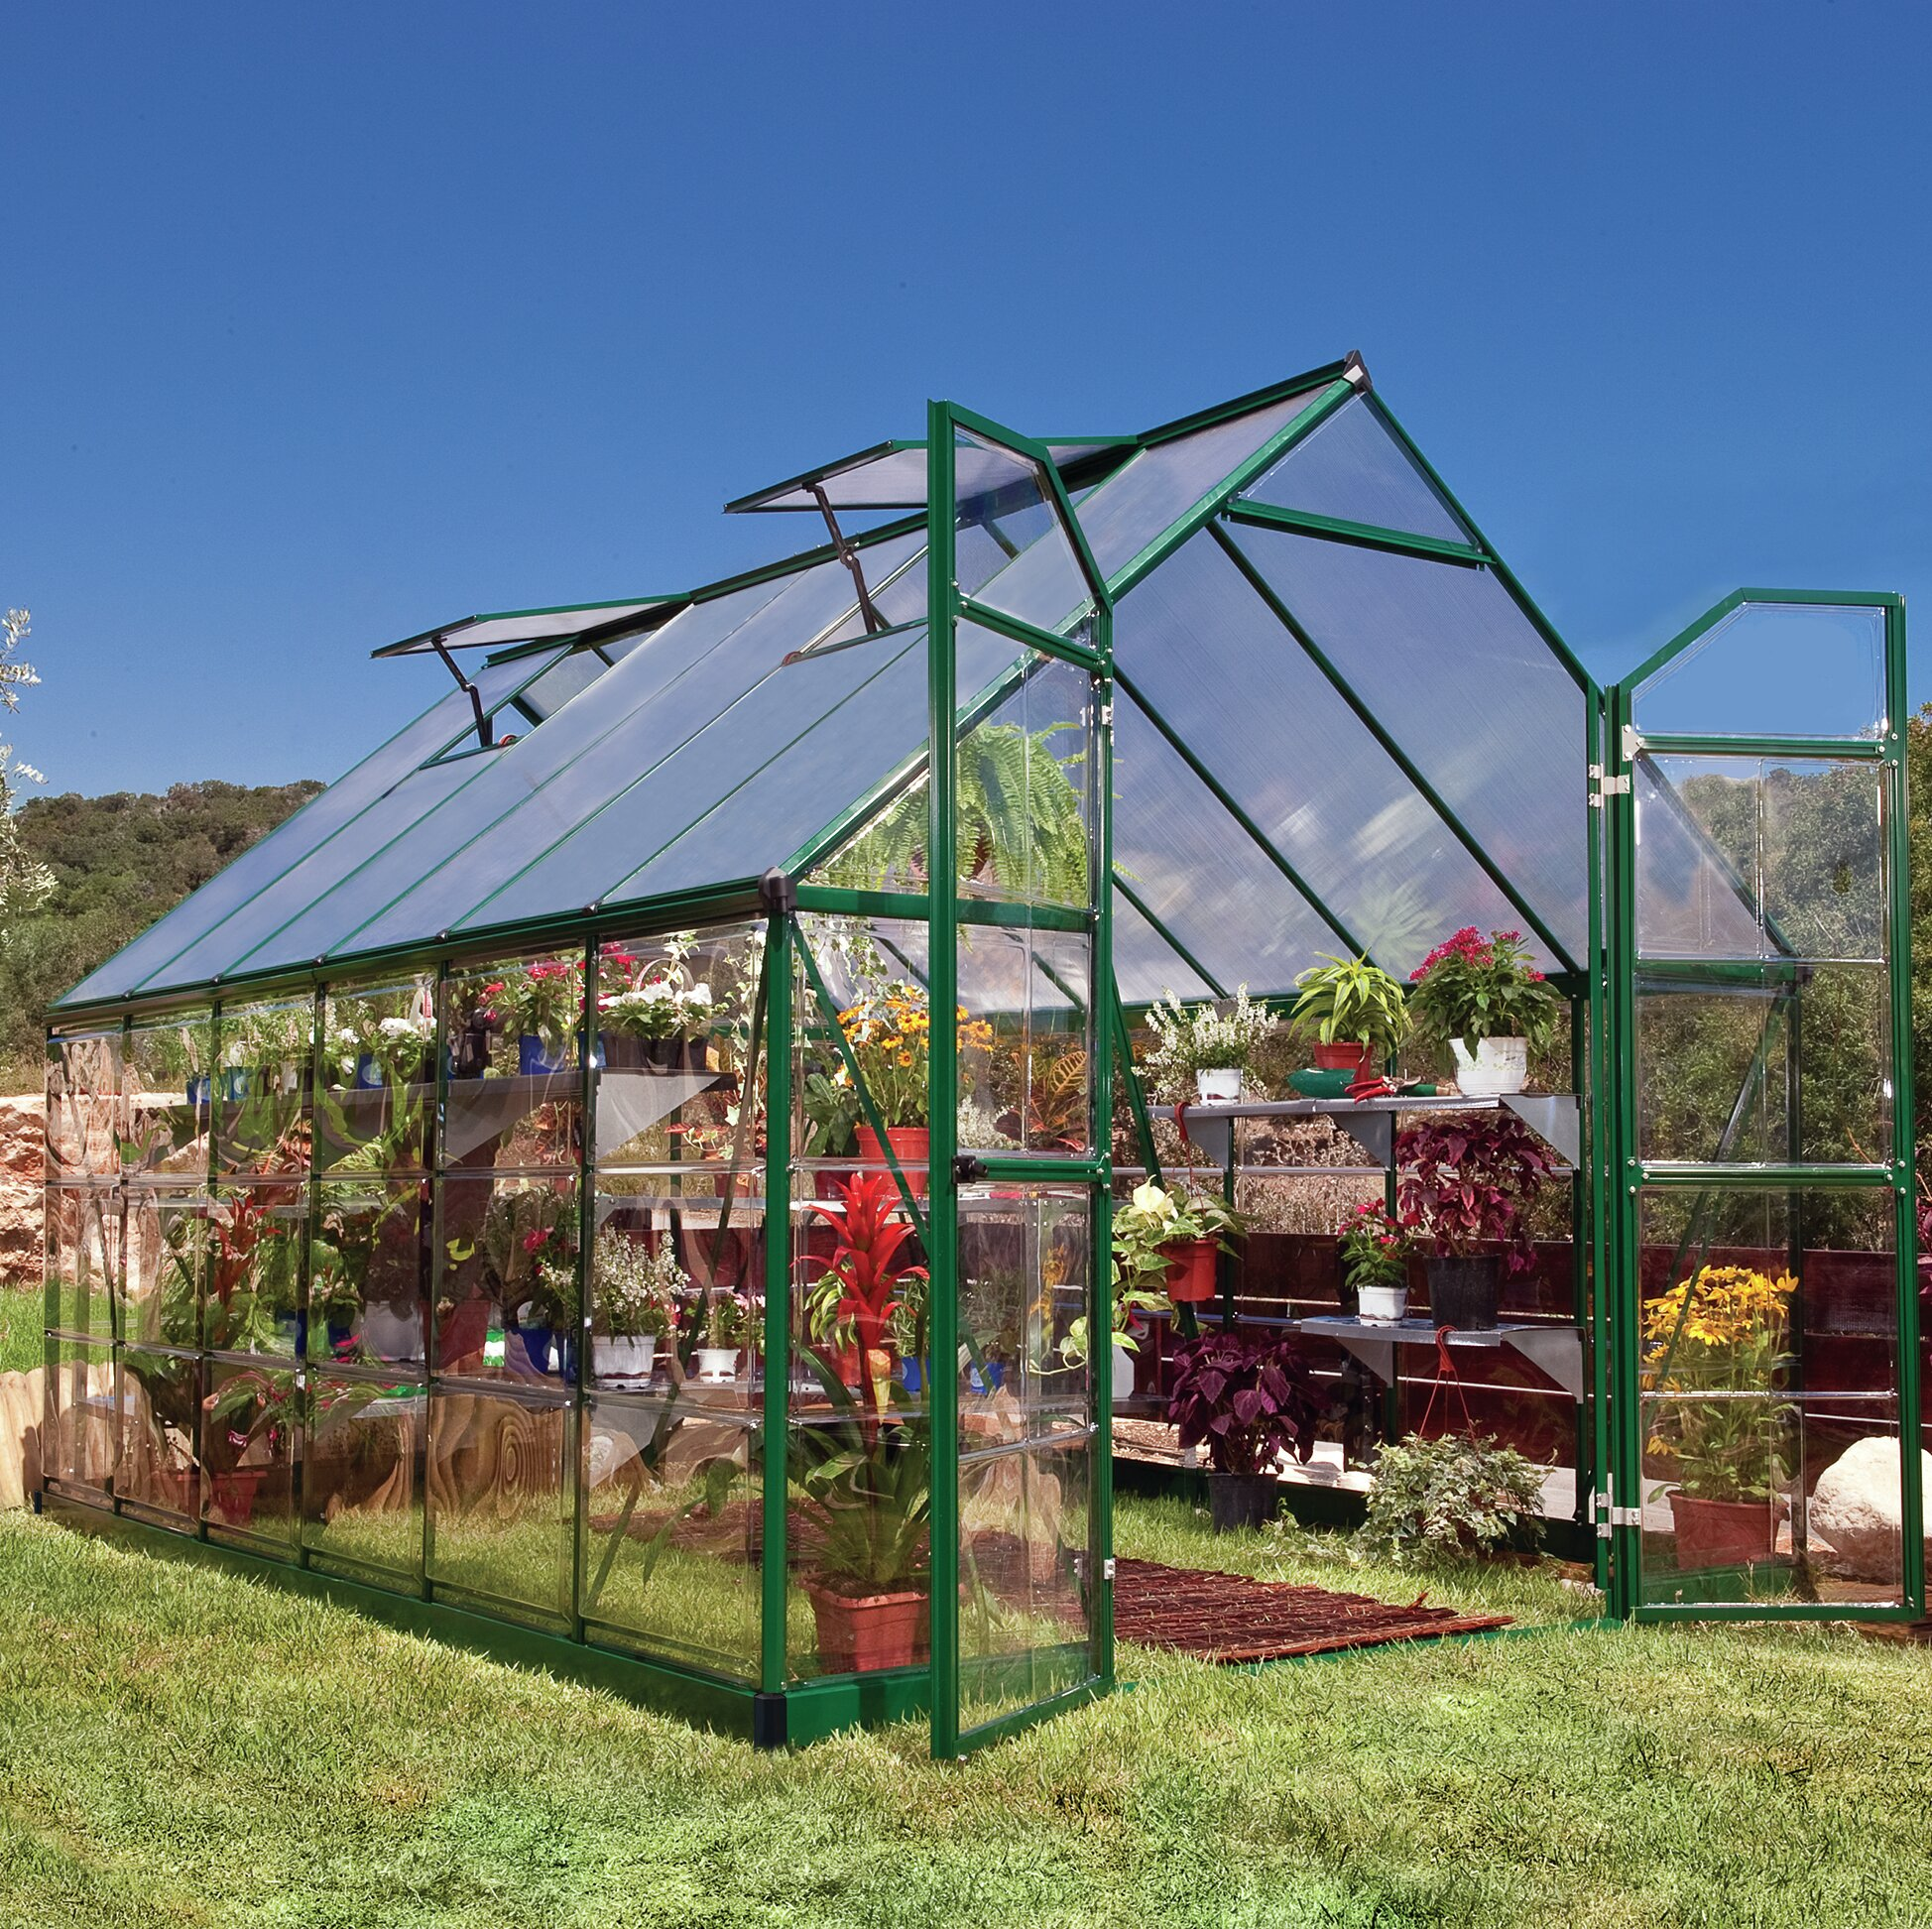 Balance 8 Ft  W x 12 Ft  D Greenhouse